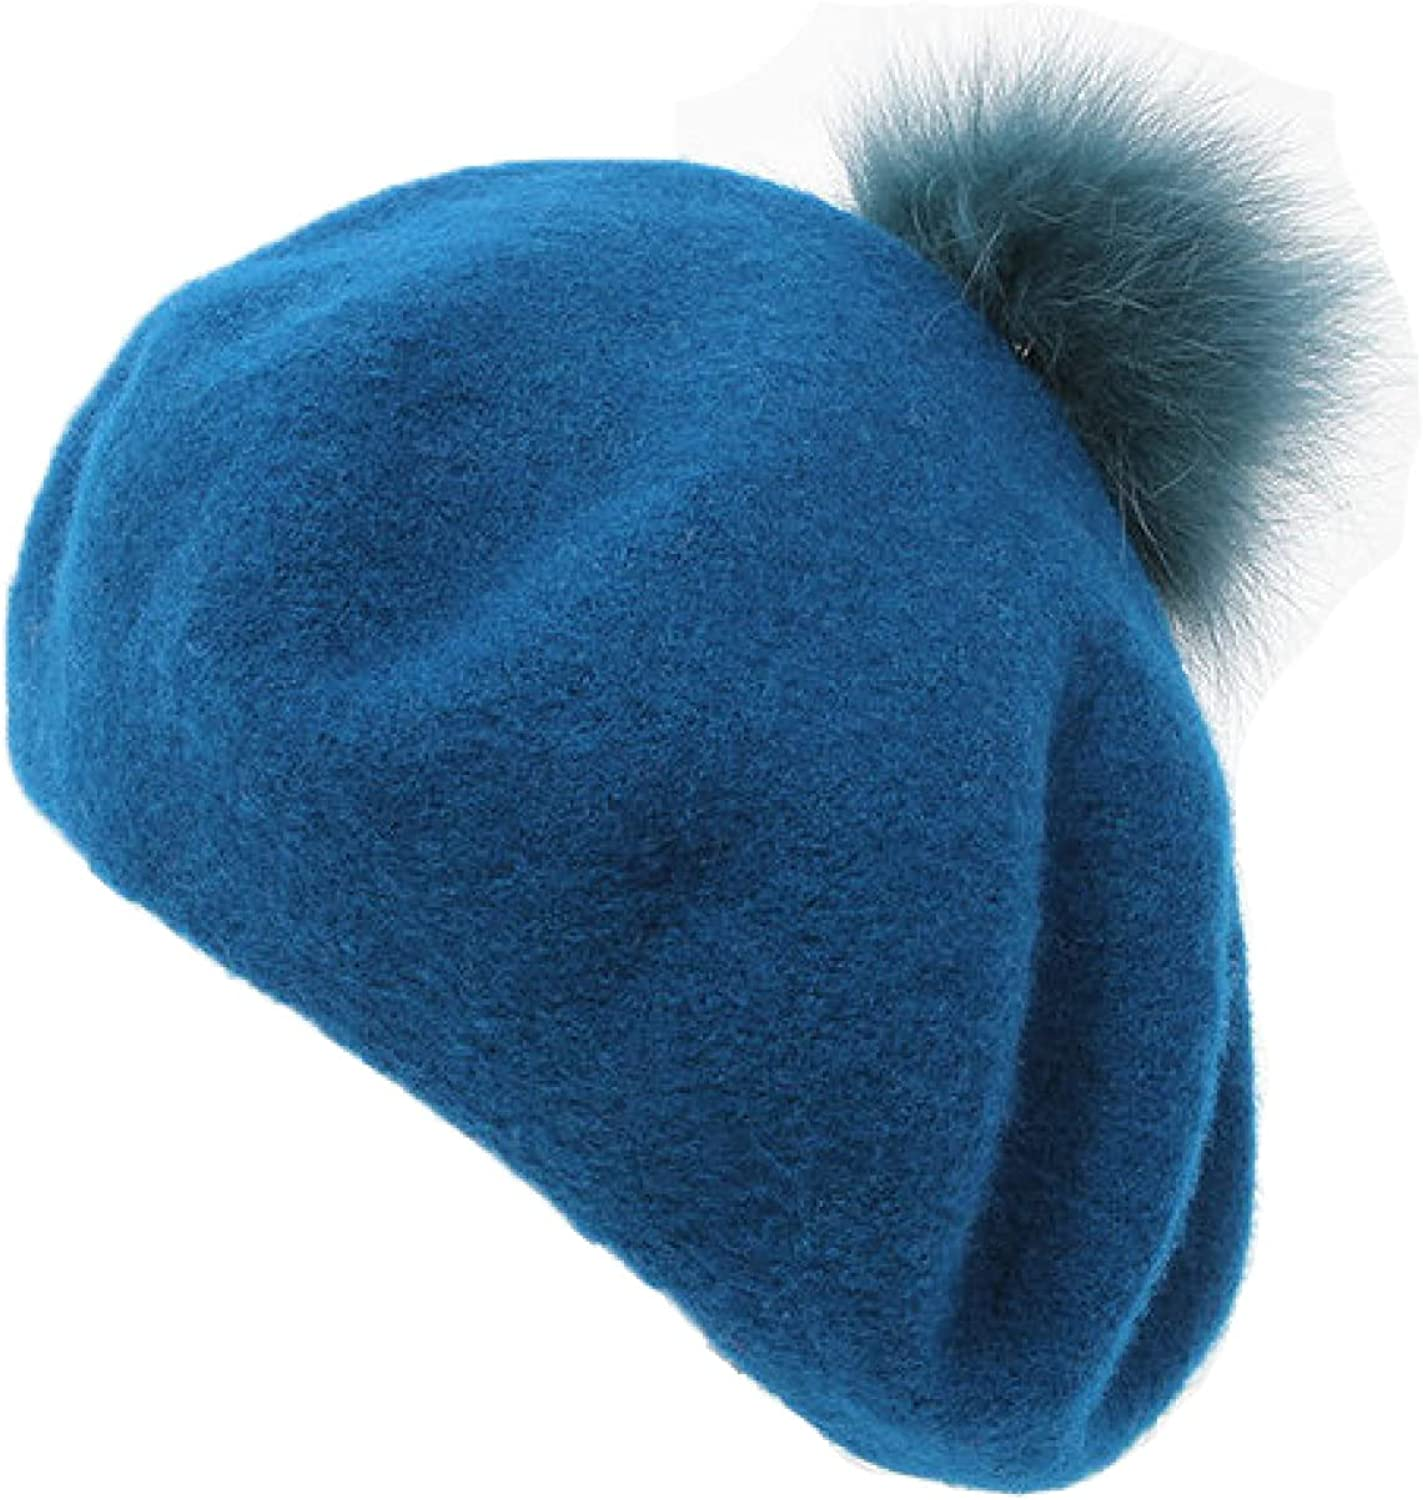 AOBRICON Cashmere Berets for Women Pompon Wool Beautiful Color Lady Beret Hat Women's Leisure Relaxation Hats